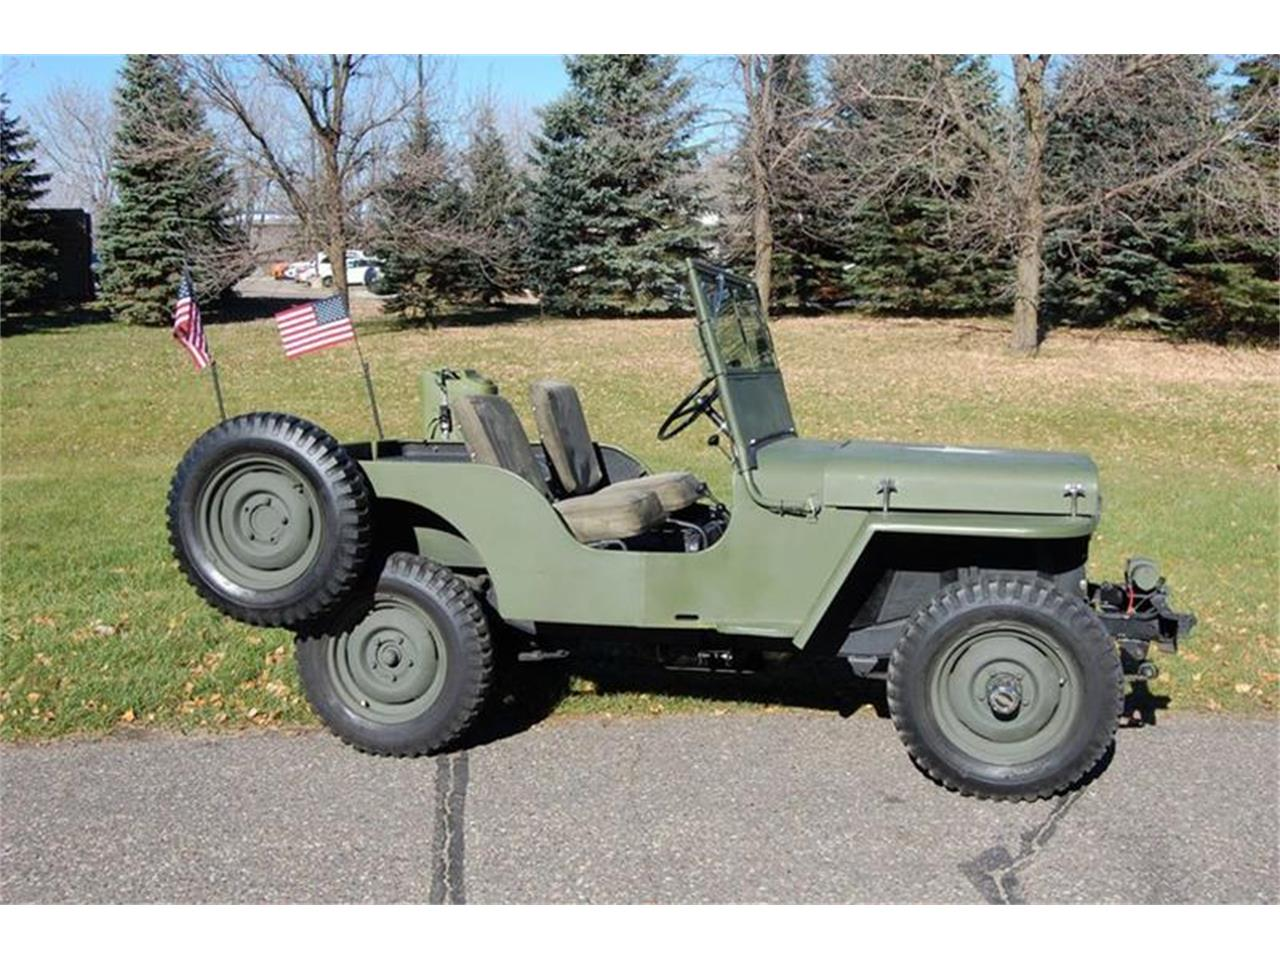 Willys Jeep For Sale >> 1946 Willys Jeep For Sale Classiccars Com Cc 1159901